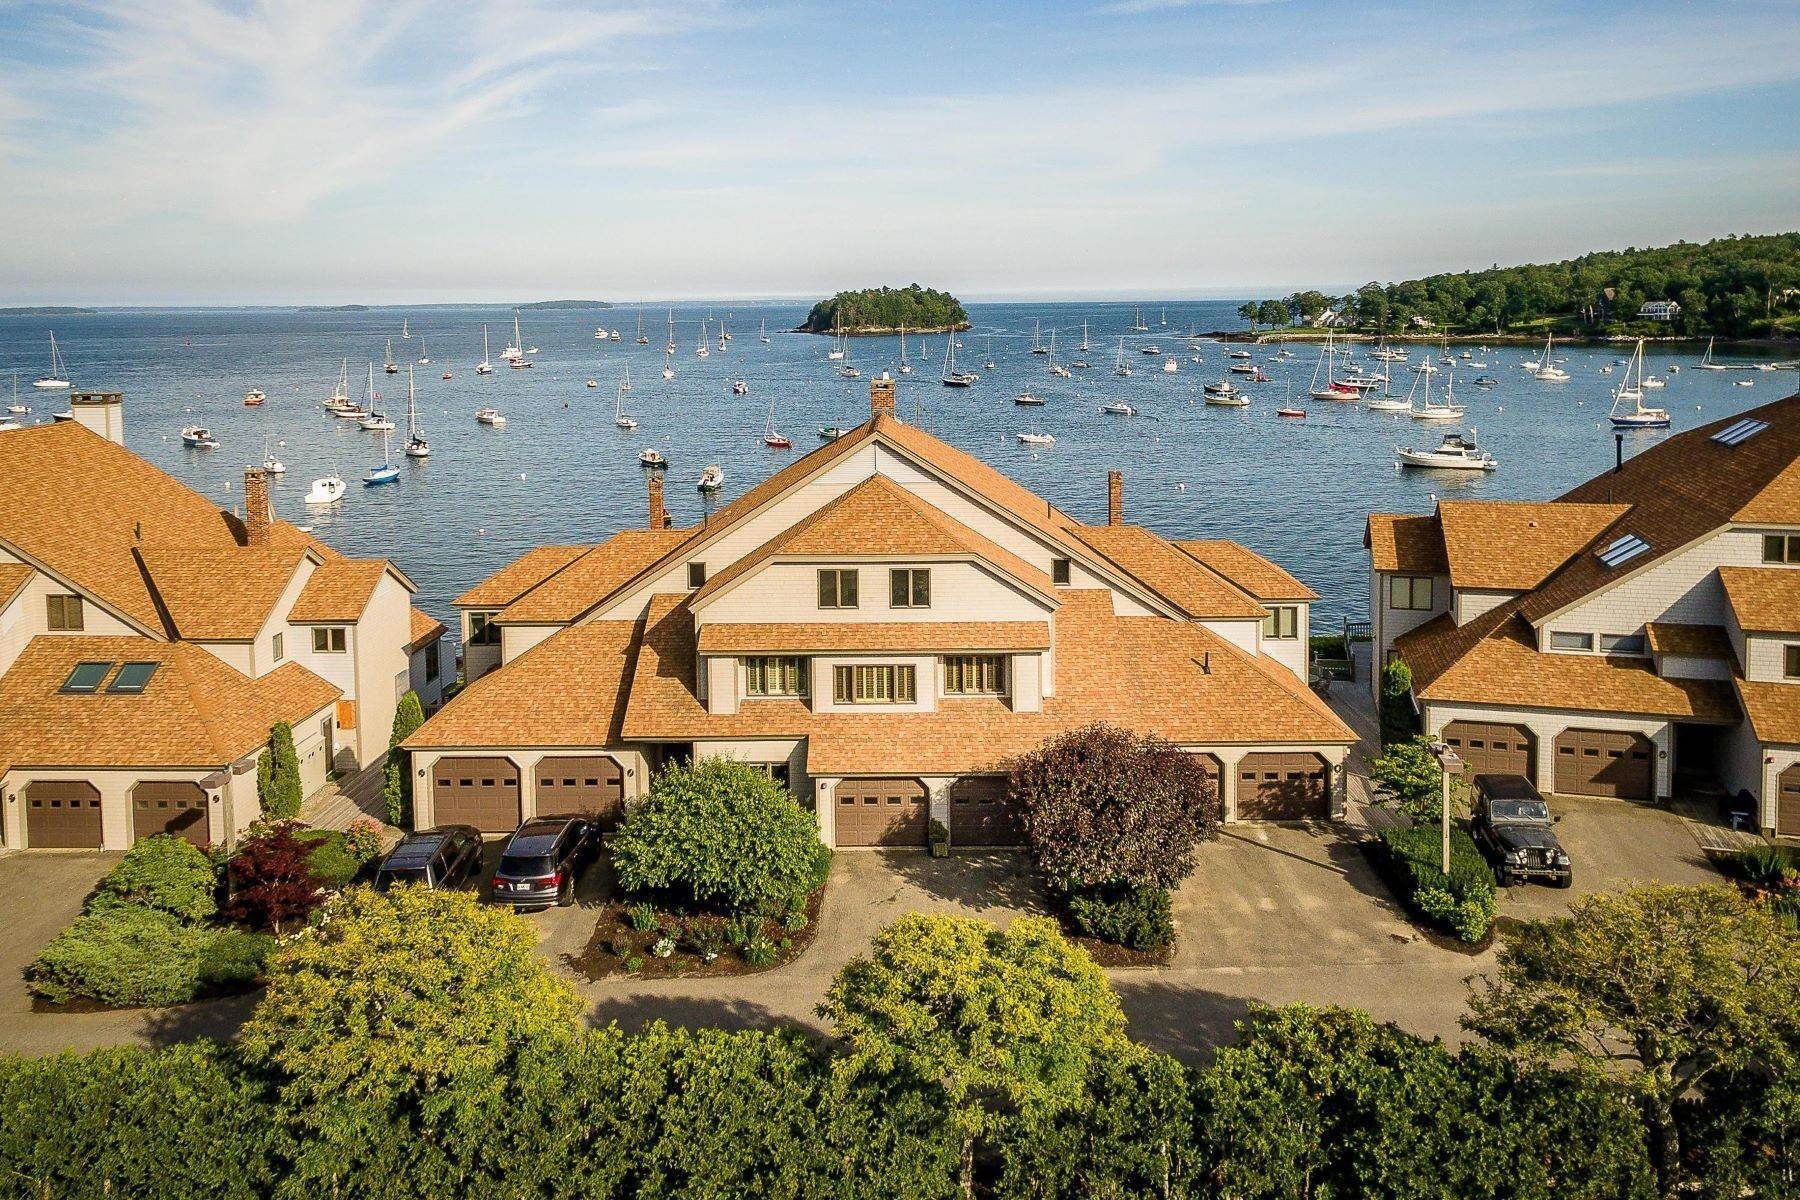 Condominiums for Sale at 7 Ocean Way, 7, Camden, ME 04843